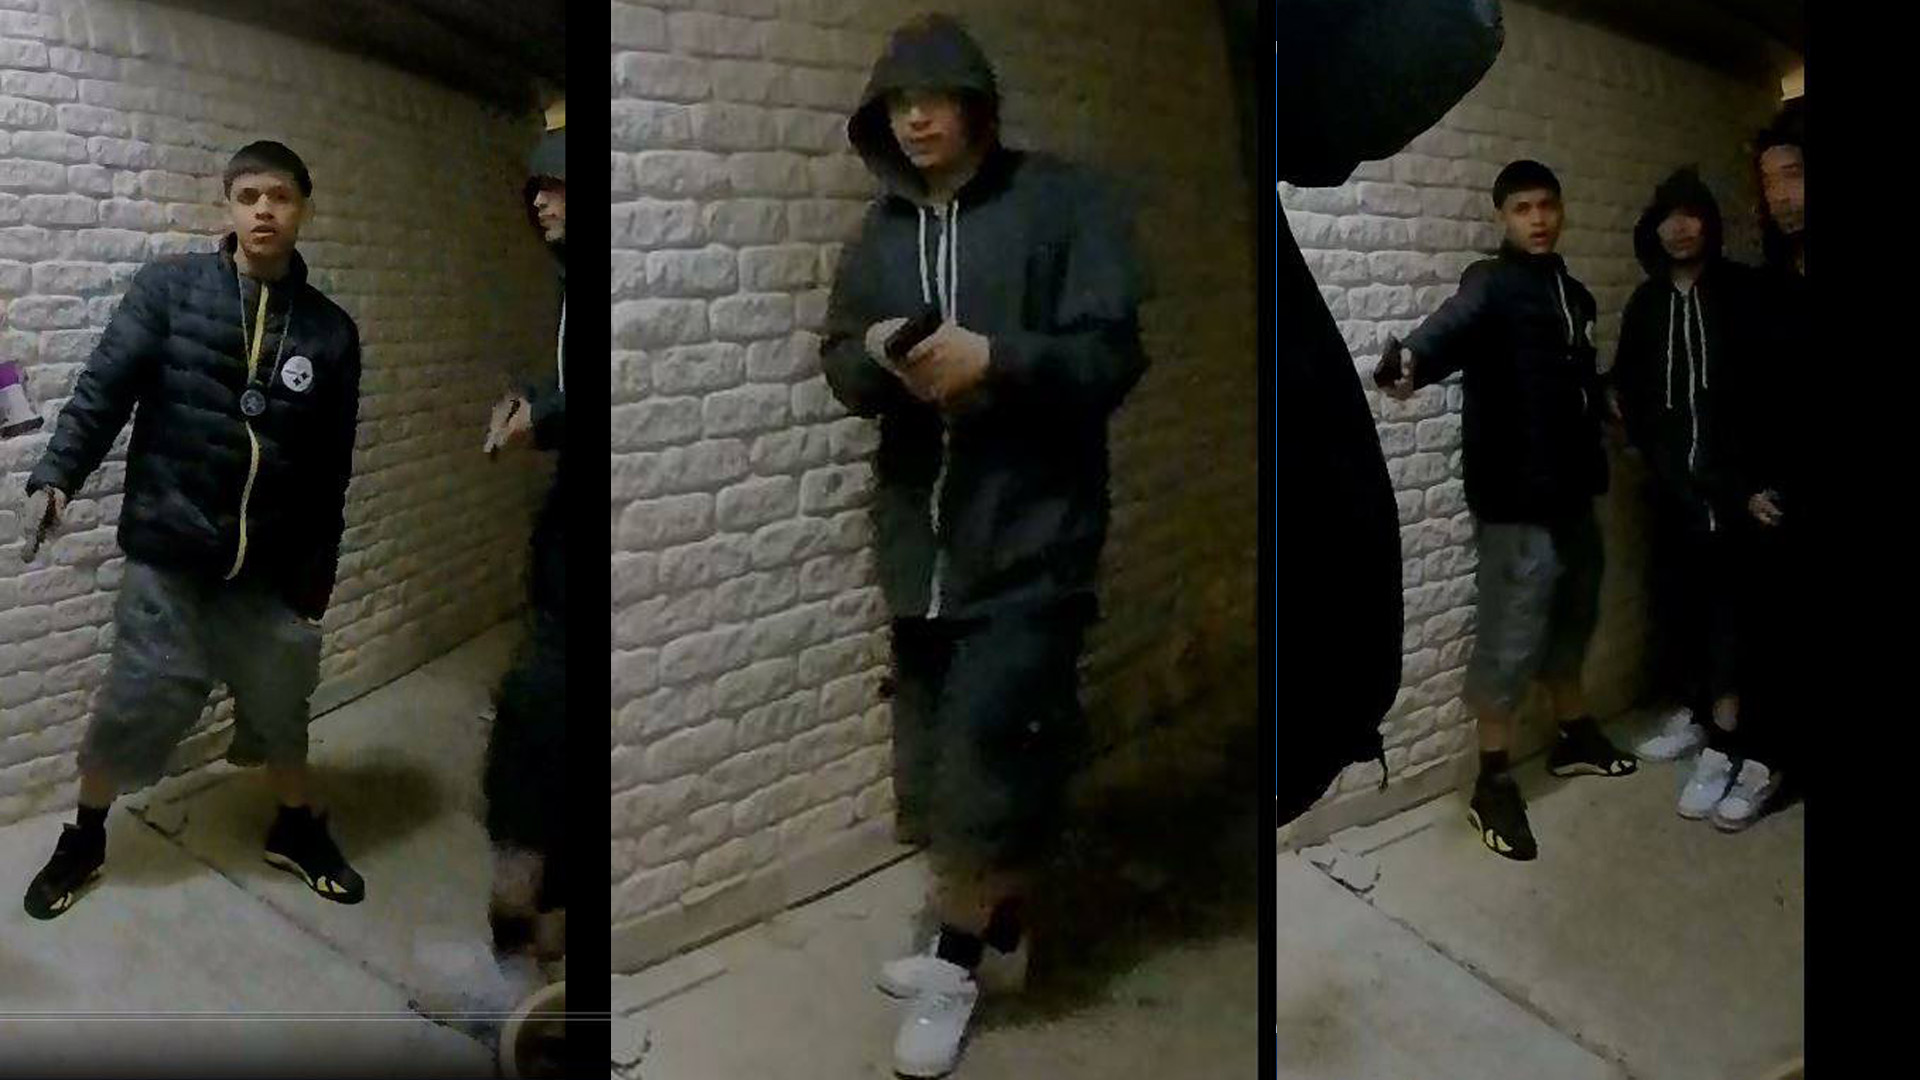 hutto aggravated robbery suspects_1544274660331.jpg.jpg